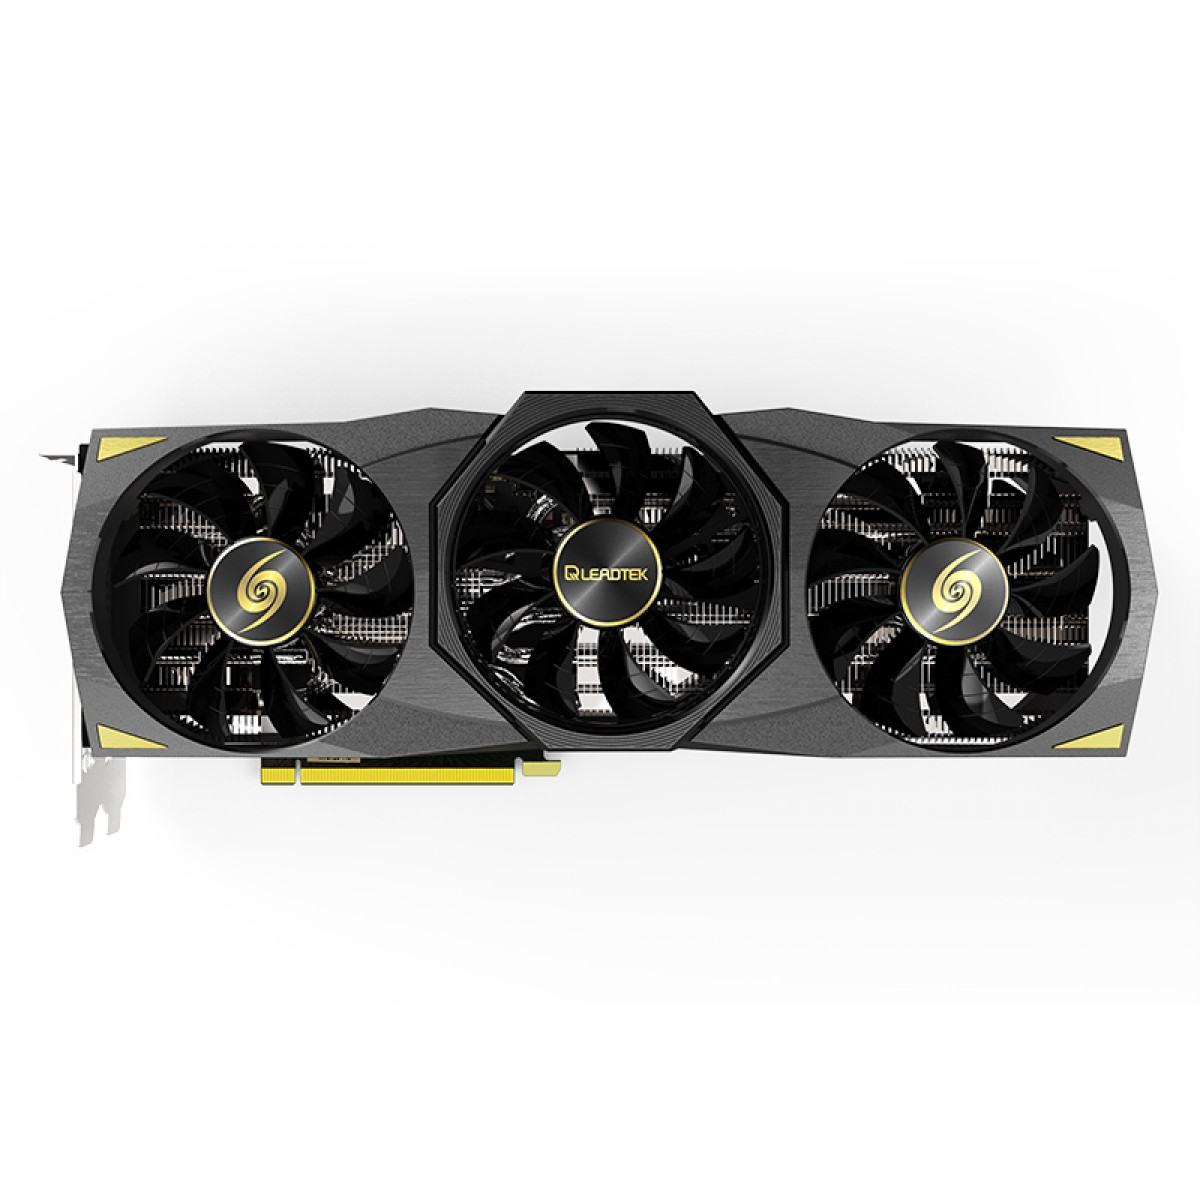 Placa de Vídeo Leadtek WinFast GeForce RTX 3080 Hurricane, 10GB, GDDR6X, 320bit